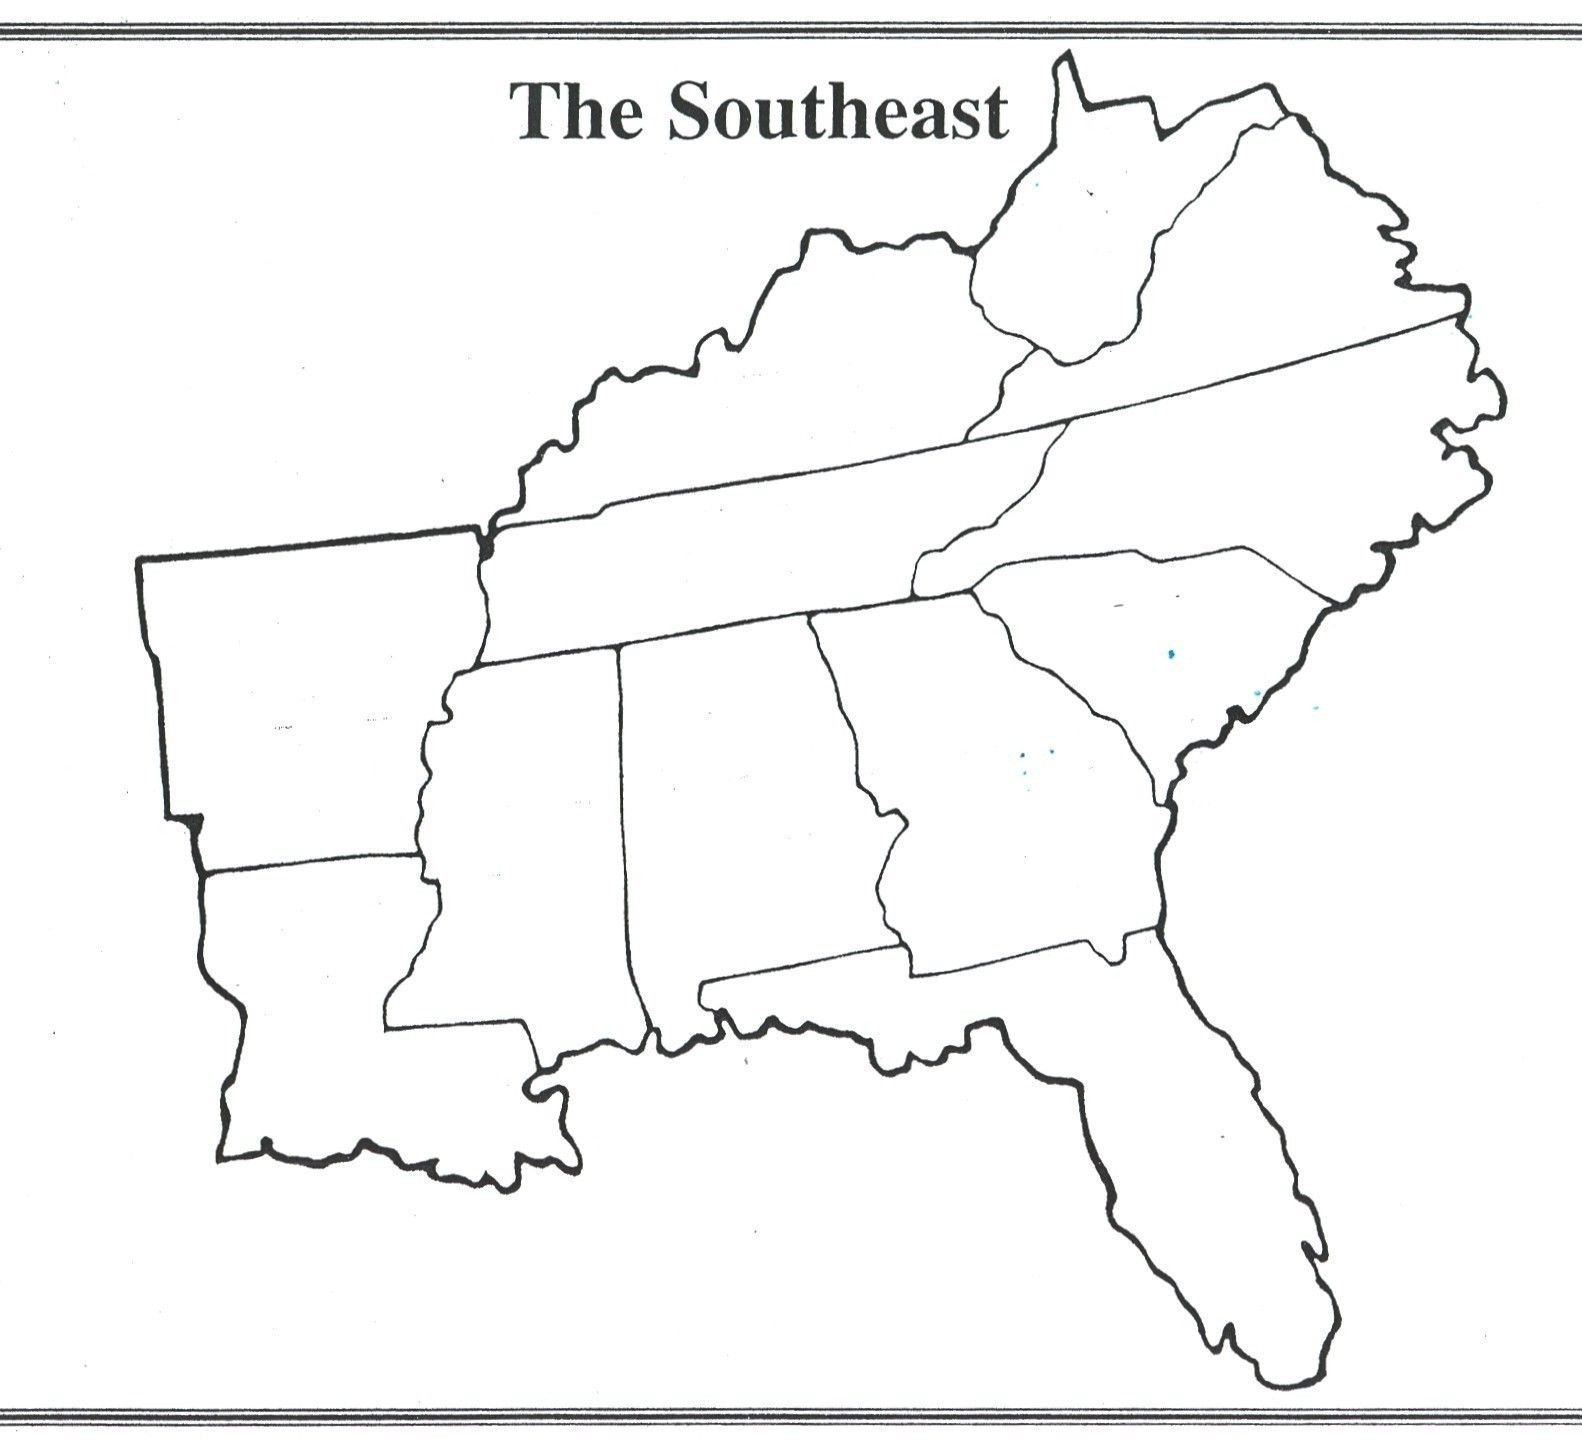 State Capitals Quiz Printable Interesting Blank Us Map Quiz Printable south Eastern States